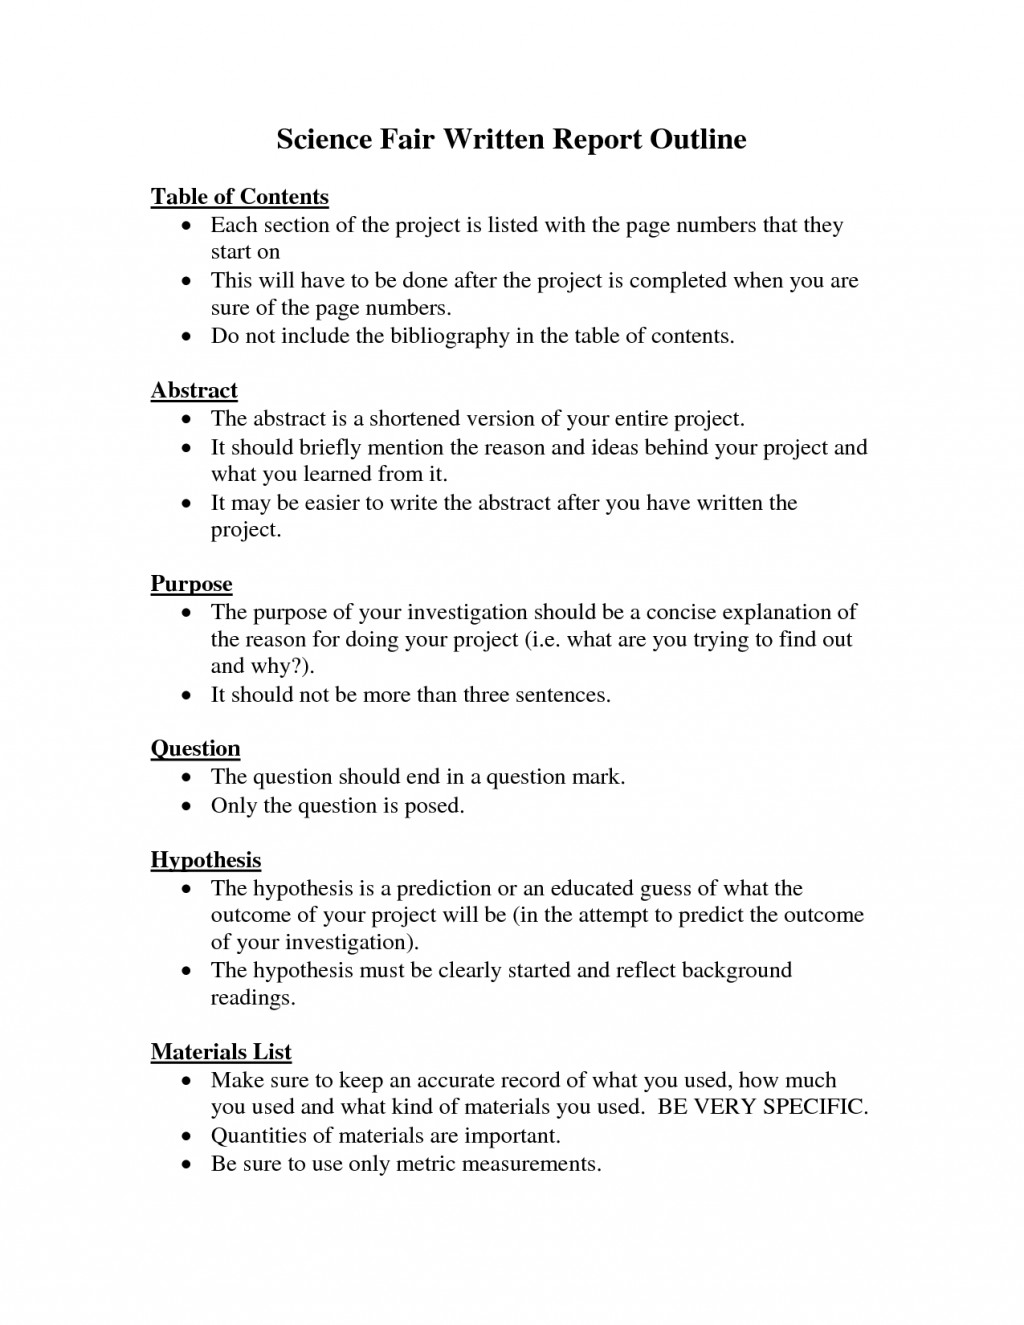 002 Scientific Research Paper Outline Unique How To Write A Science Writing Large